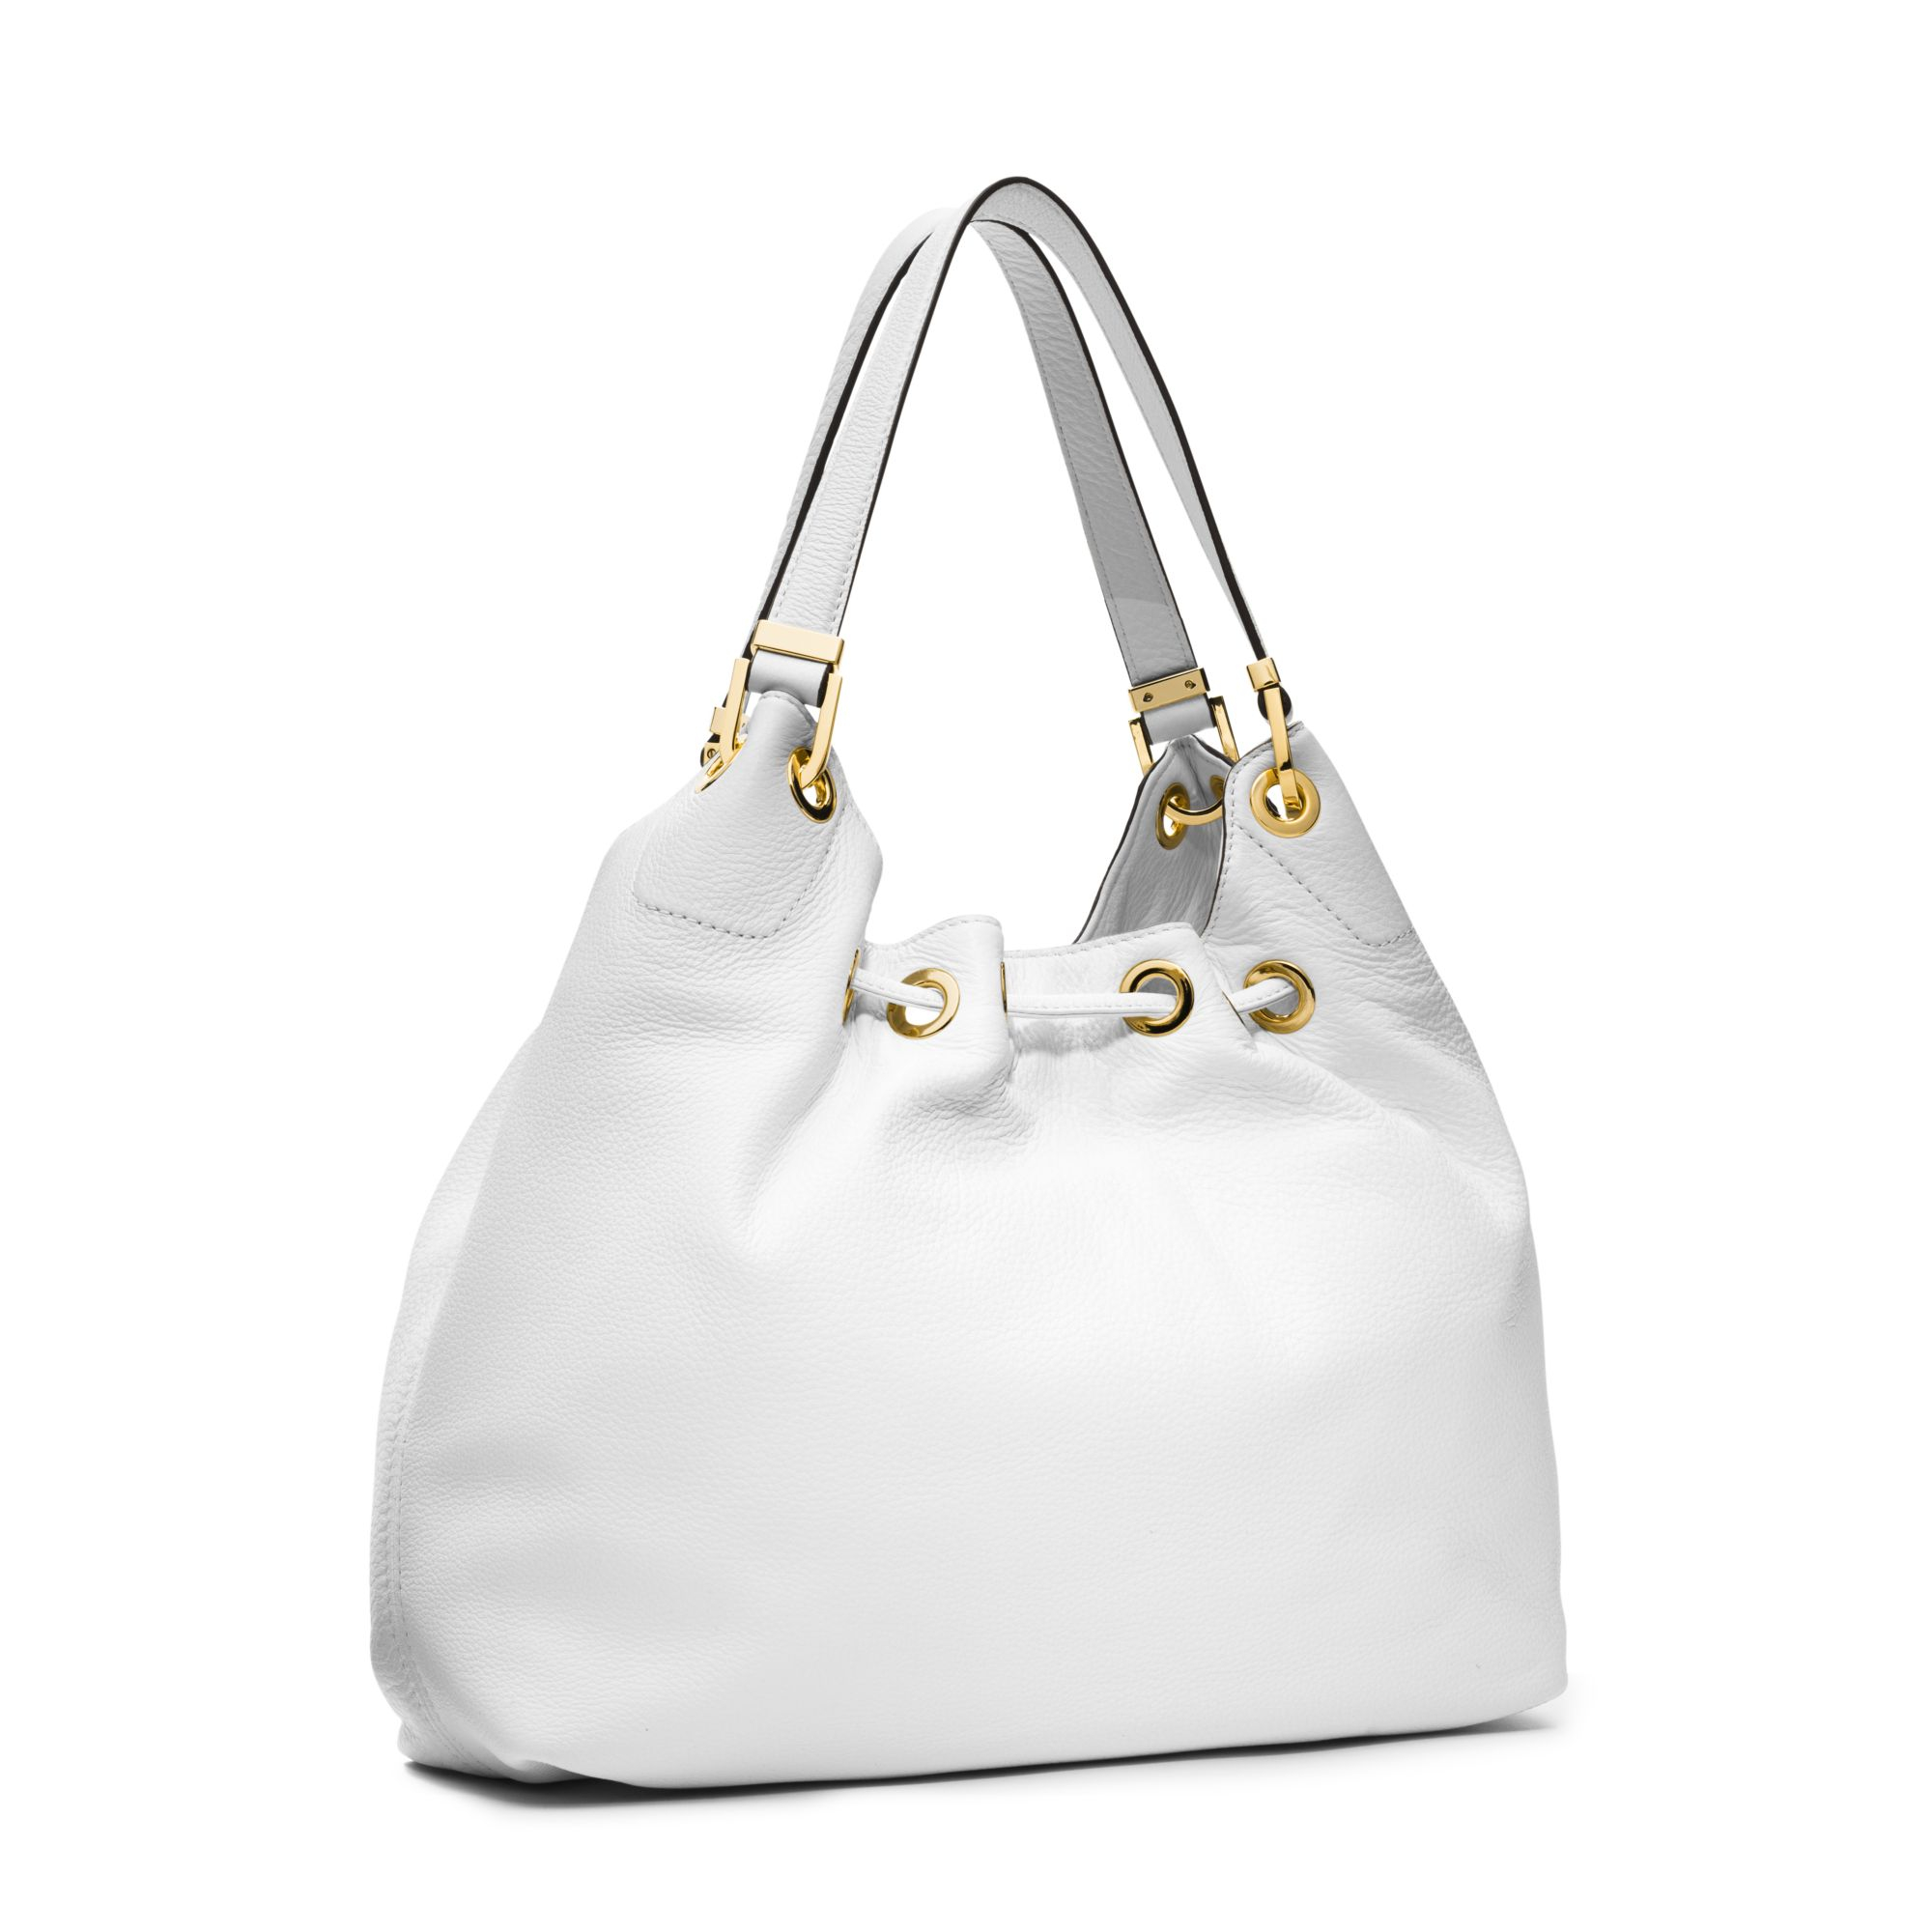 Michael kors Camden Large Leather Shoulder Bag in White | Lyst